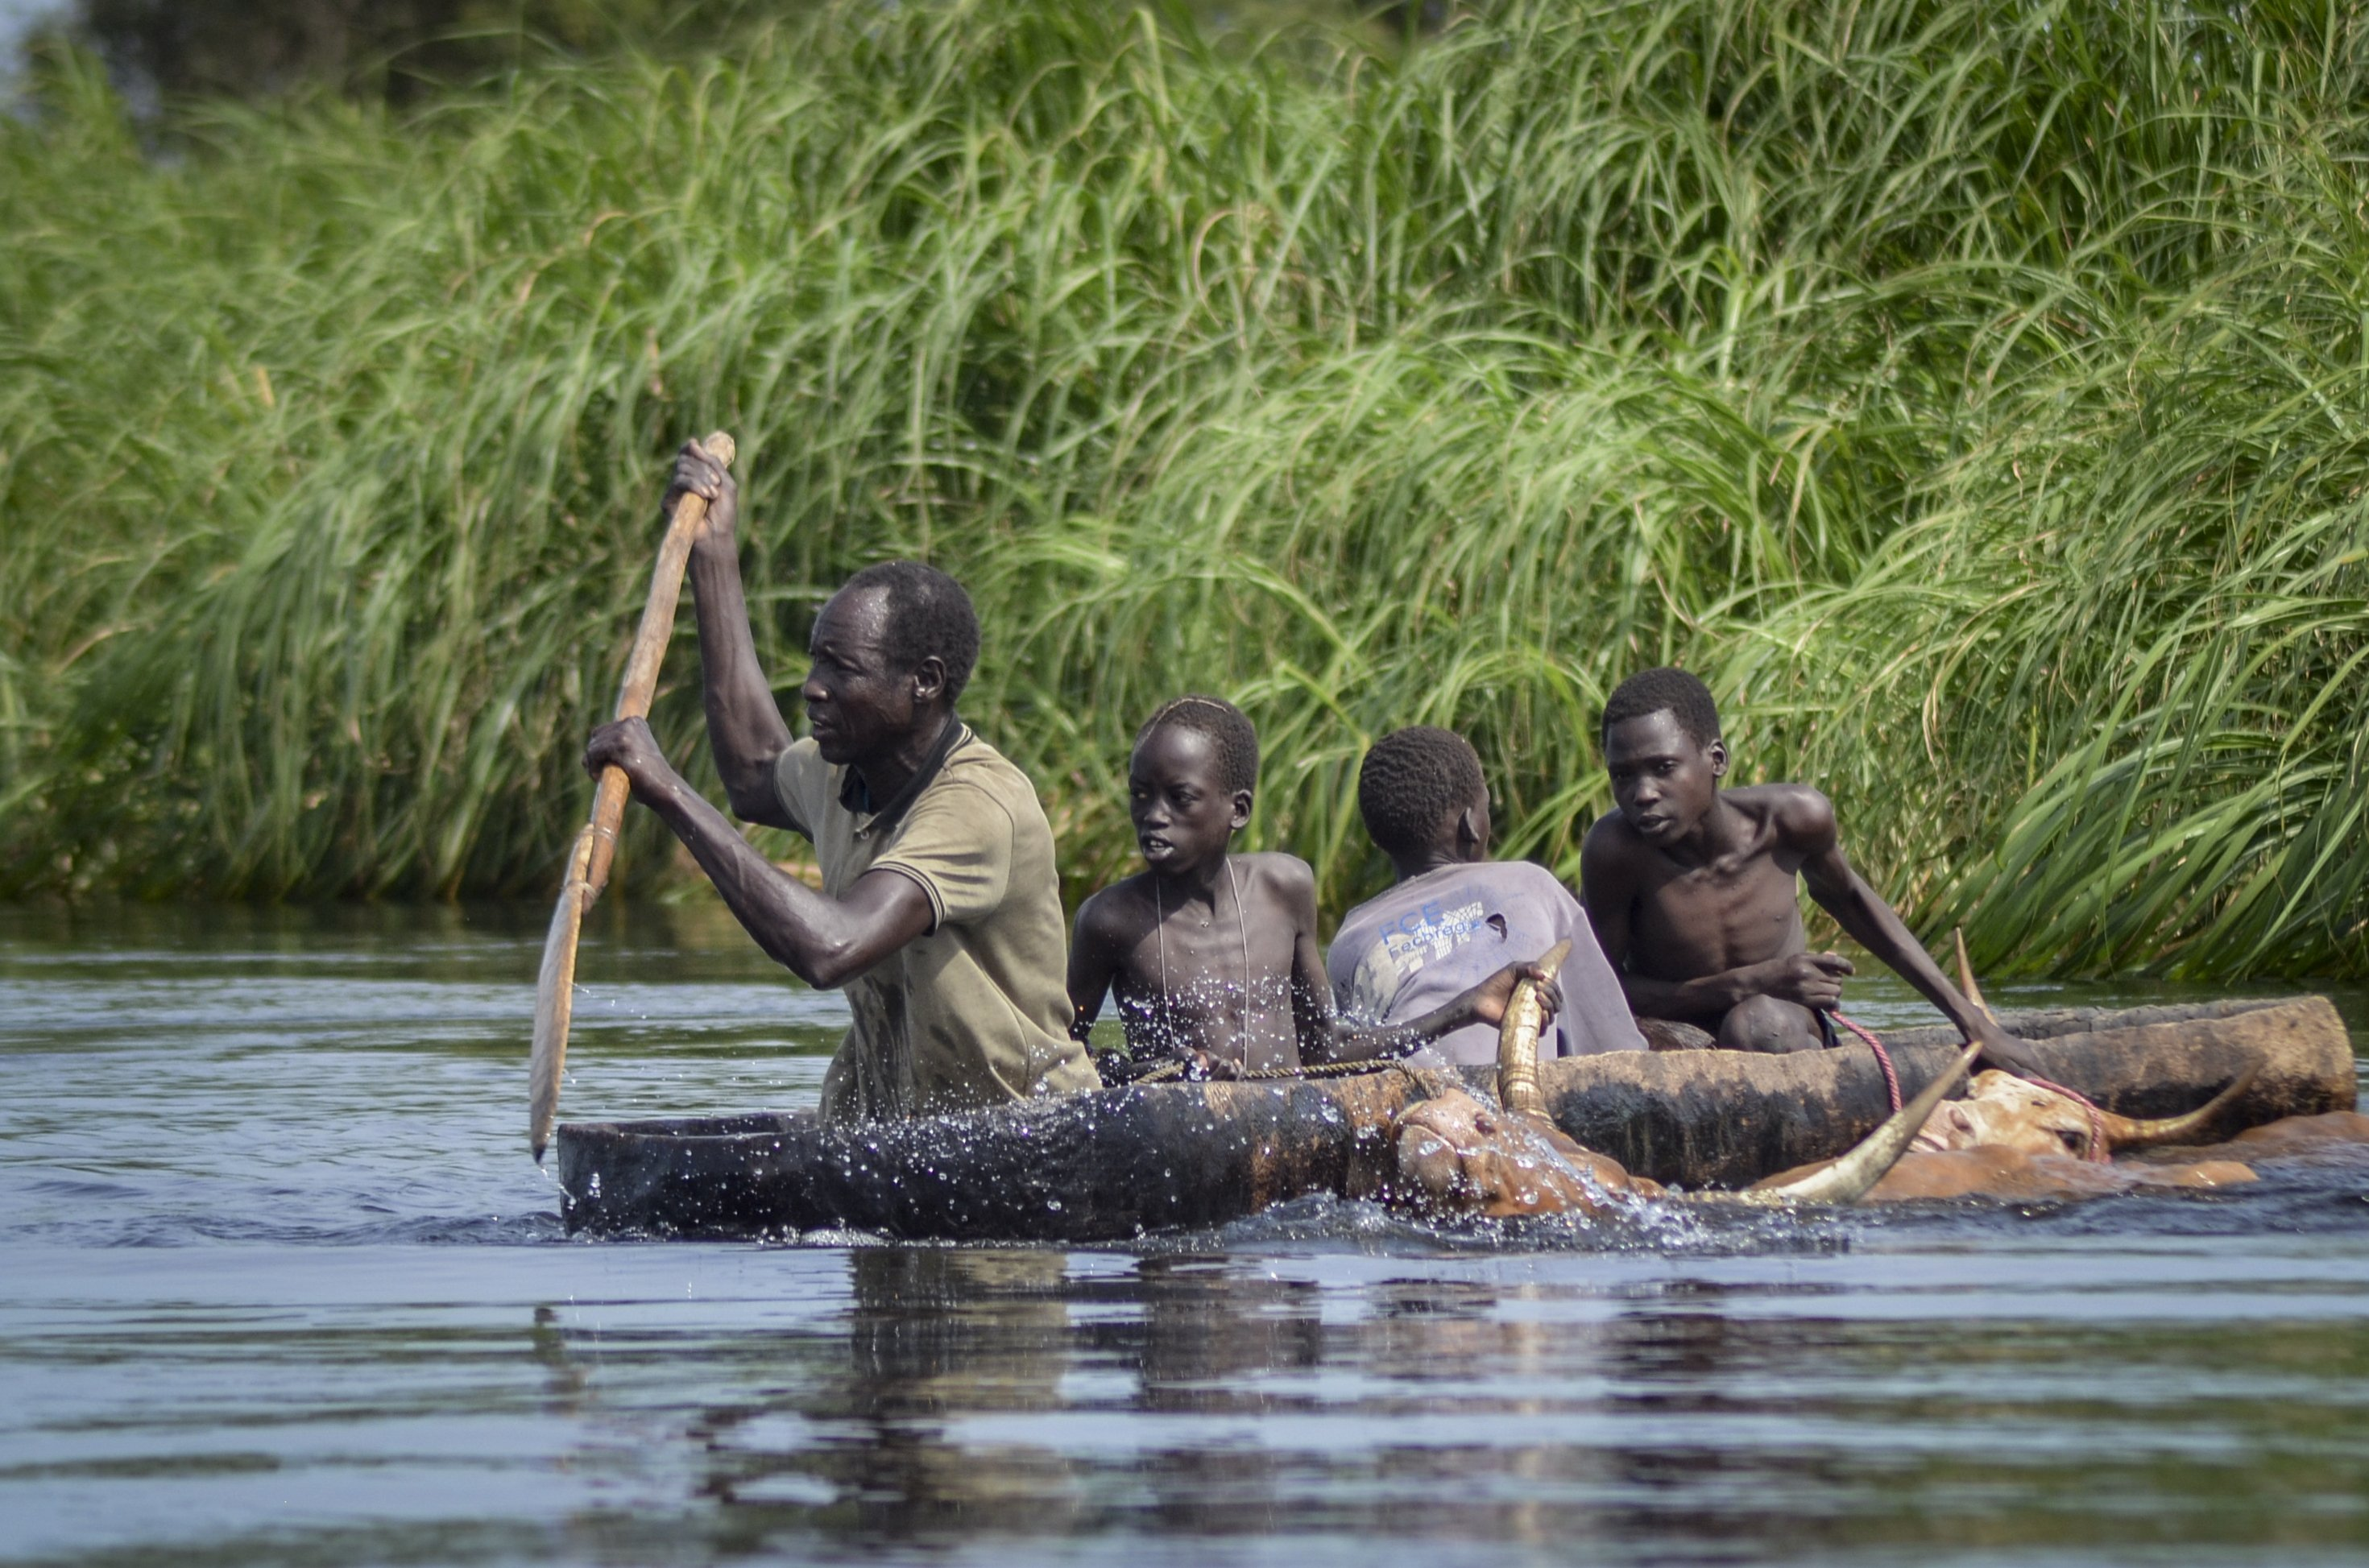 A father and his sons transport cows from a flooded area to drier ground using a dugout canoe, in Old Fangak county, Jonglei state, South Sudan, Nov. 25, 2020. (AP Photo)